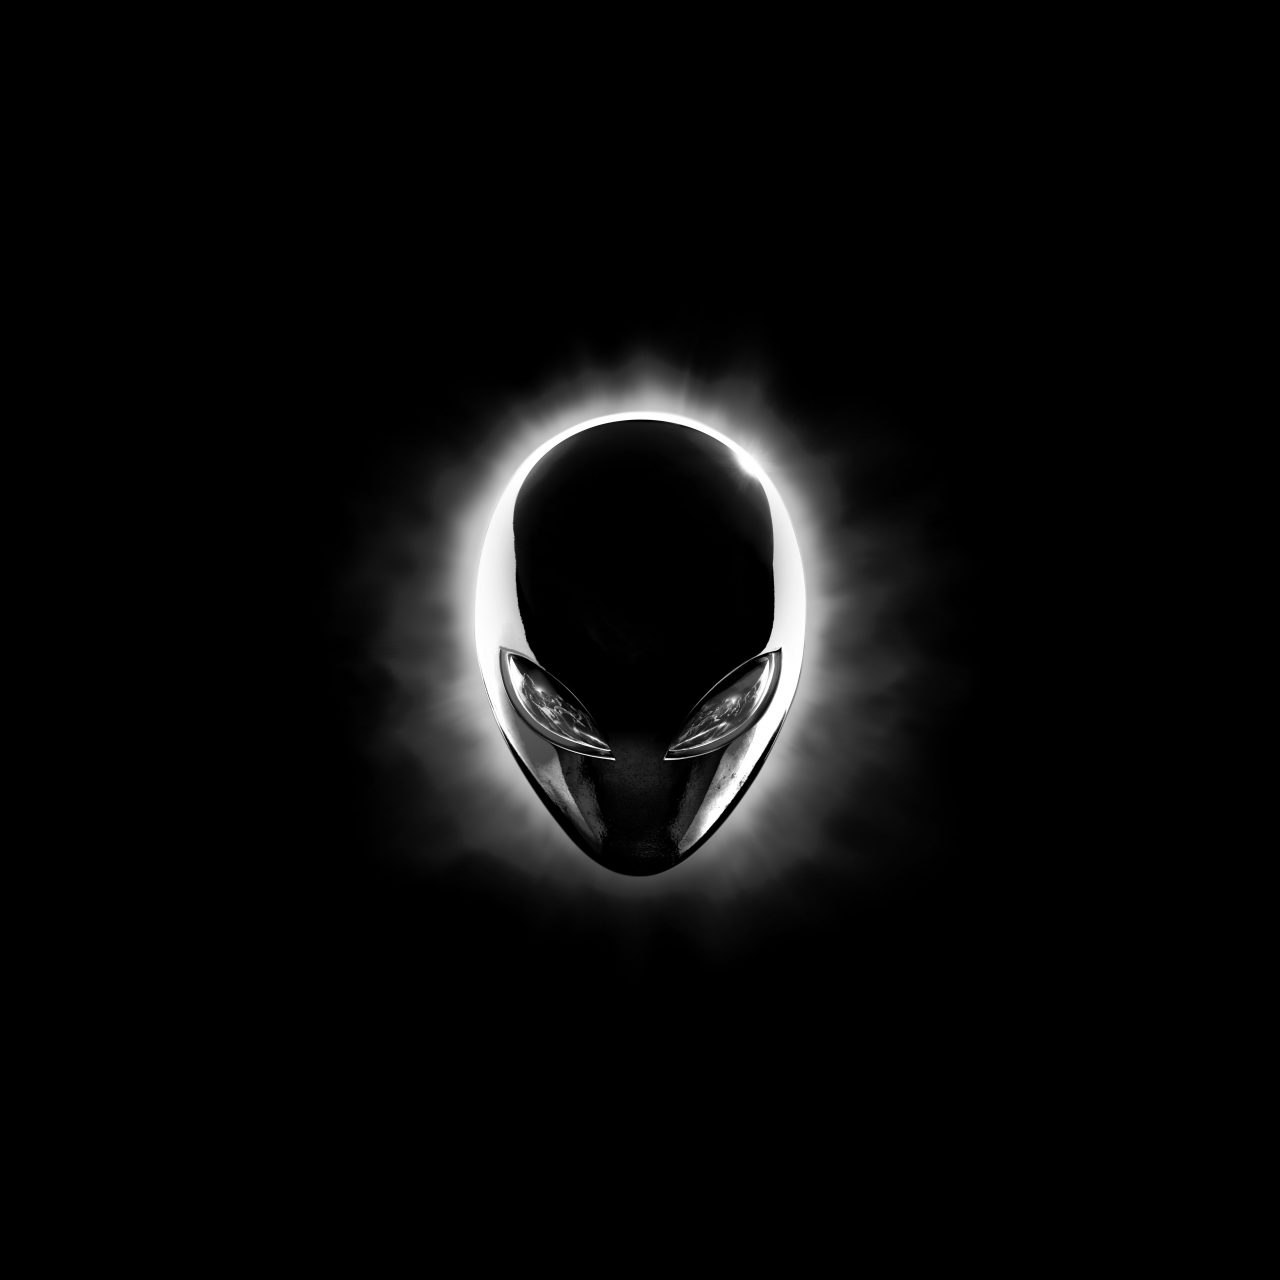 Alienware Eclipse Head (Black) 8K UHD Wallpaper